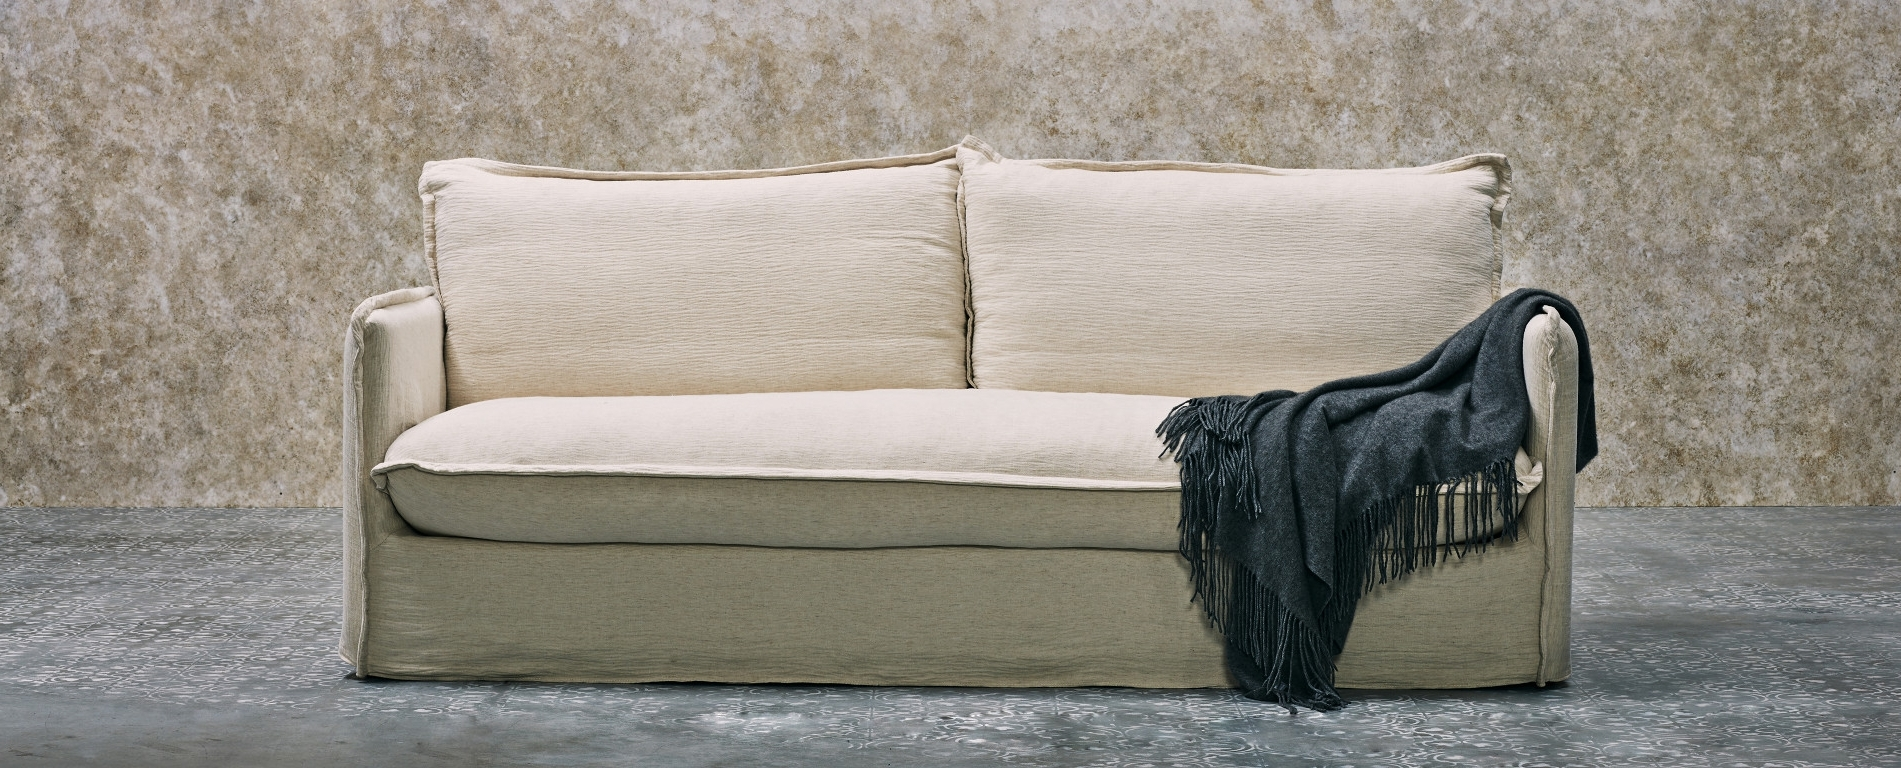 Feather Filled Sofa W/ Pillow Style Cushions (View 12 of 15)